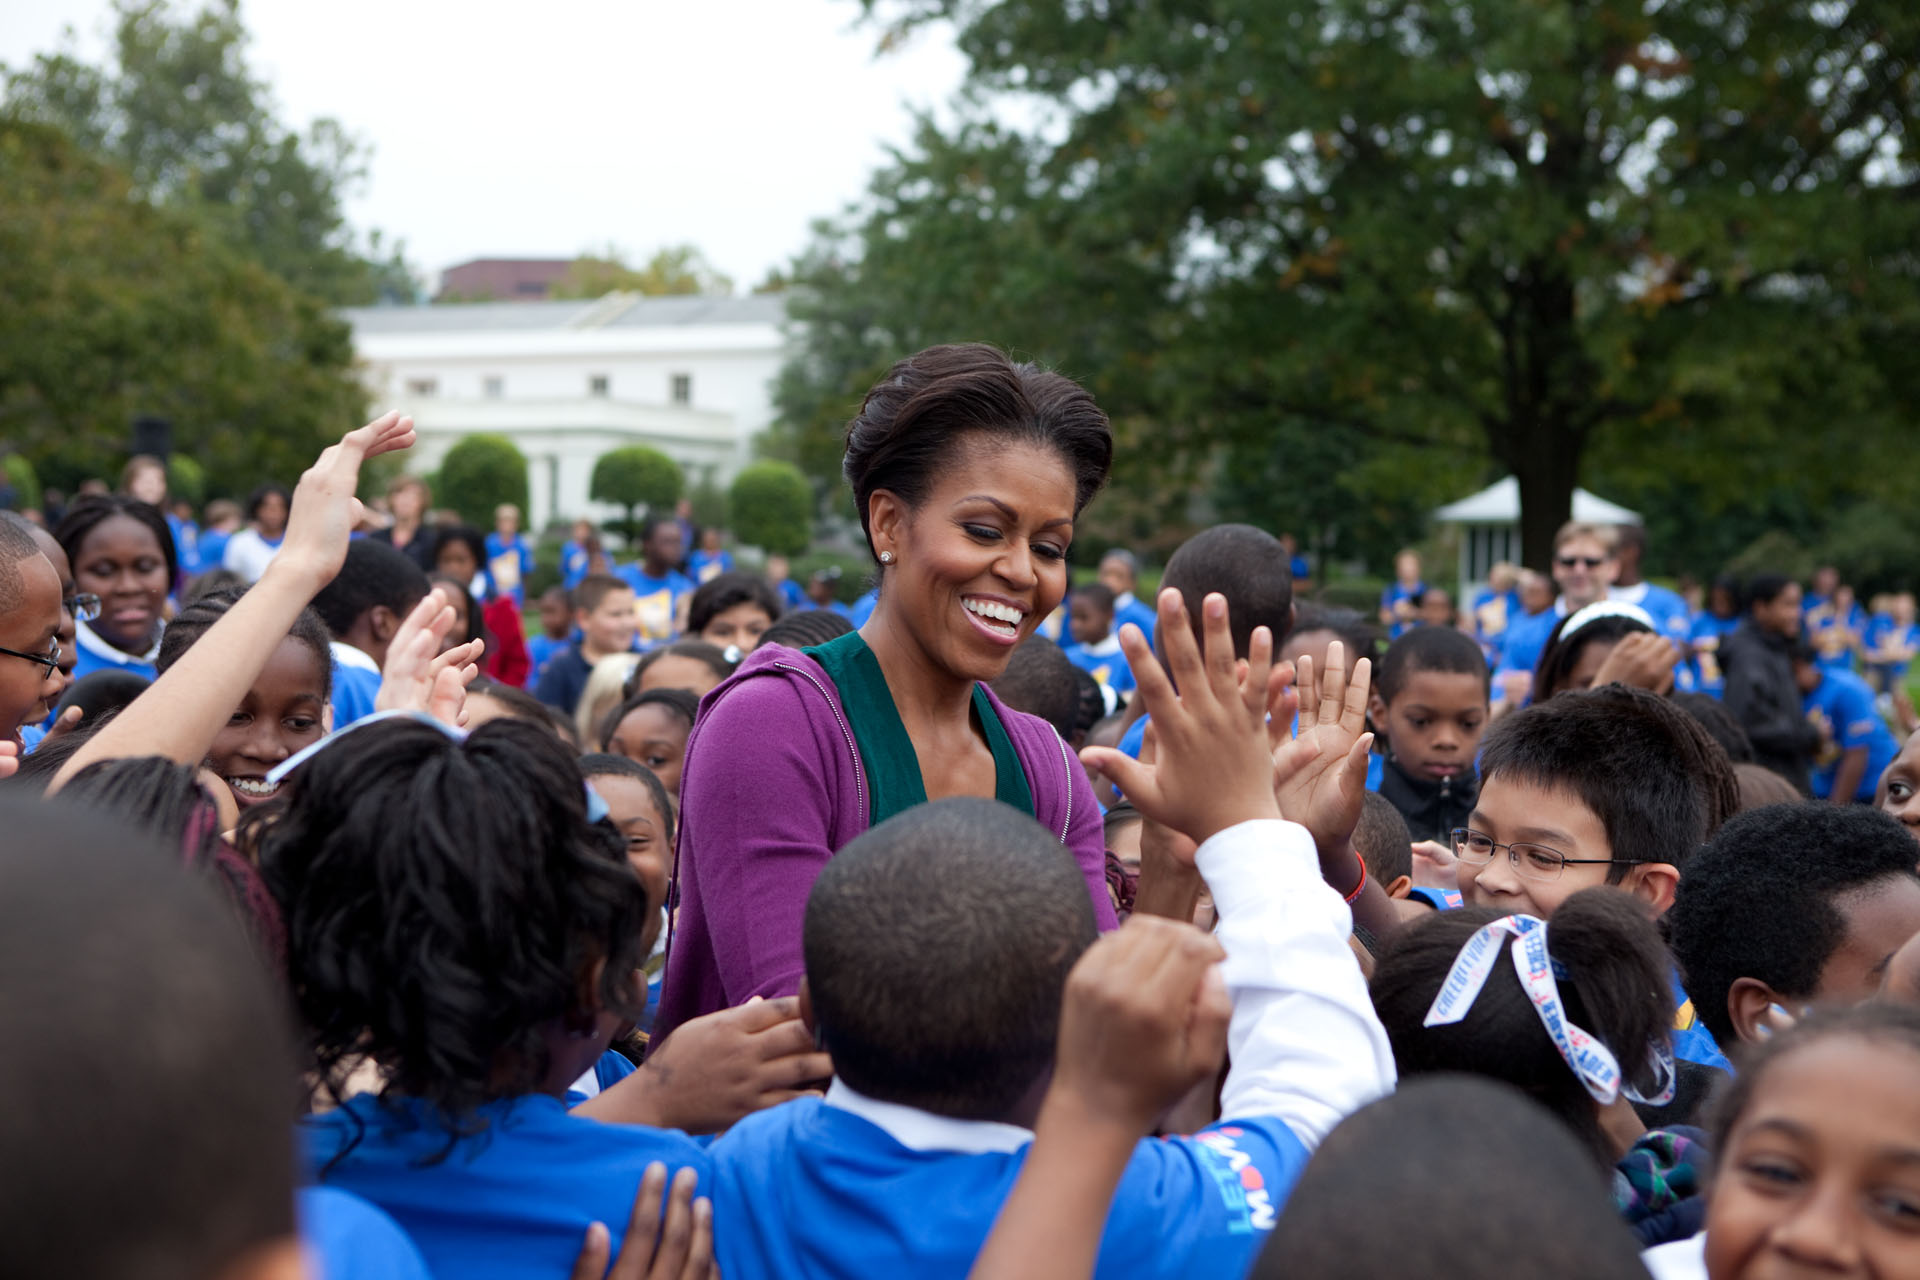 First Lady Michelle Obama after doing Jumping Jacks to break the Guinness Record